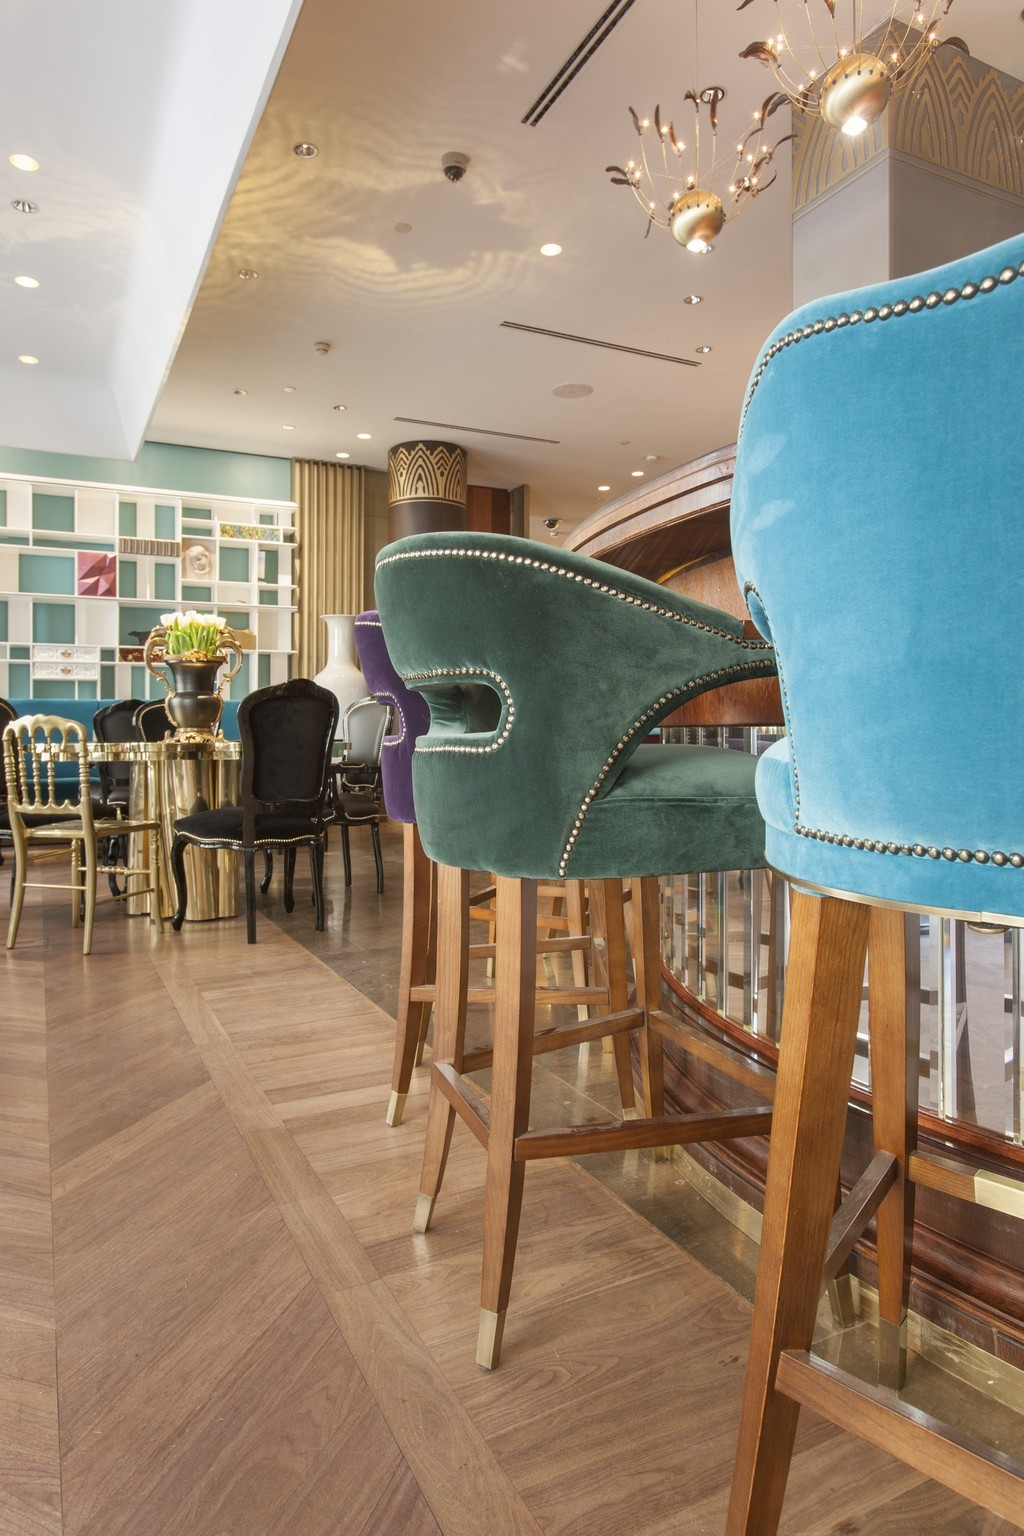 Top 10 Chairs in Hospitality Projects